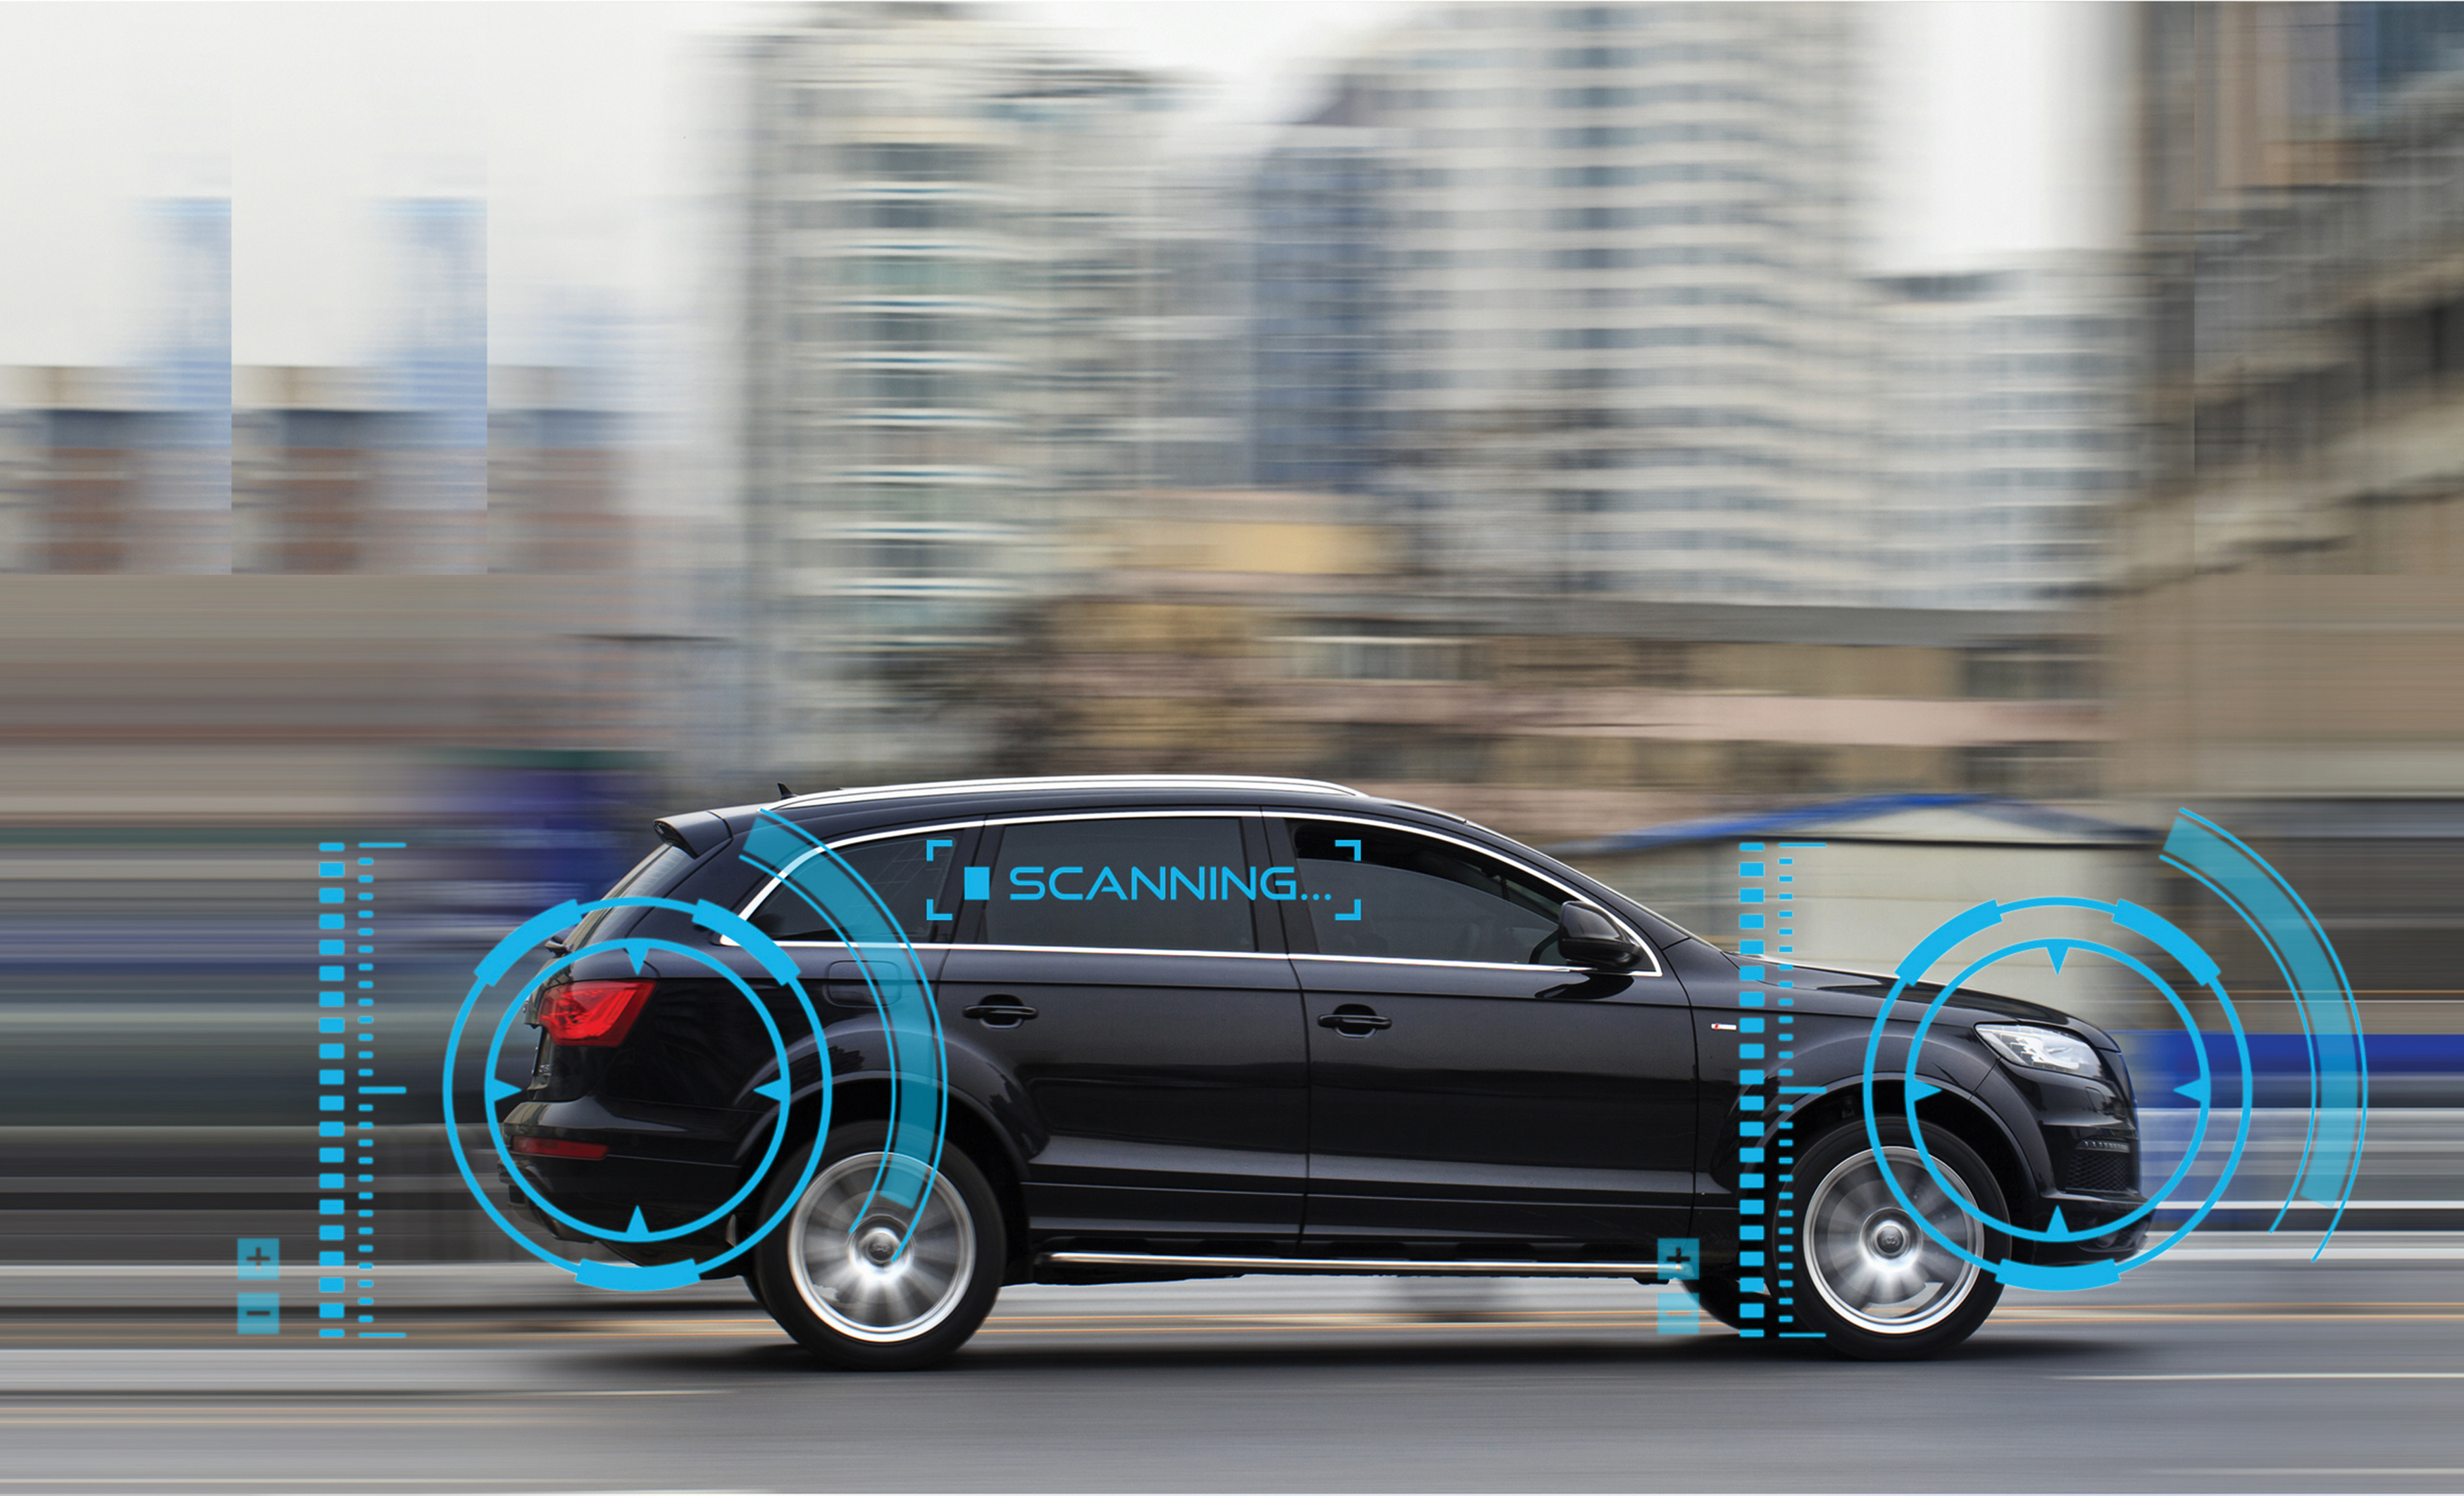 NXP Semiconductor introduced a central computing platform designed to test self-driving cars.